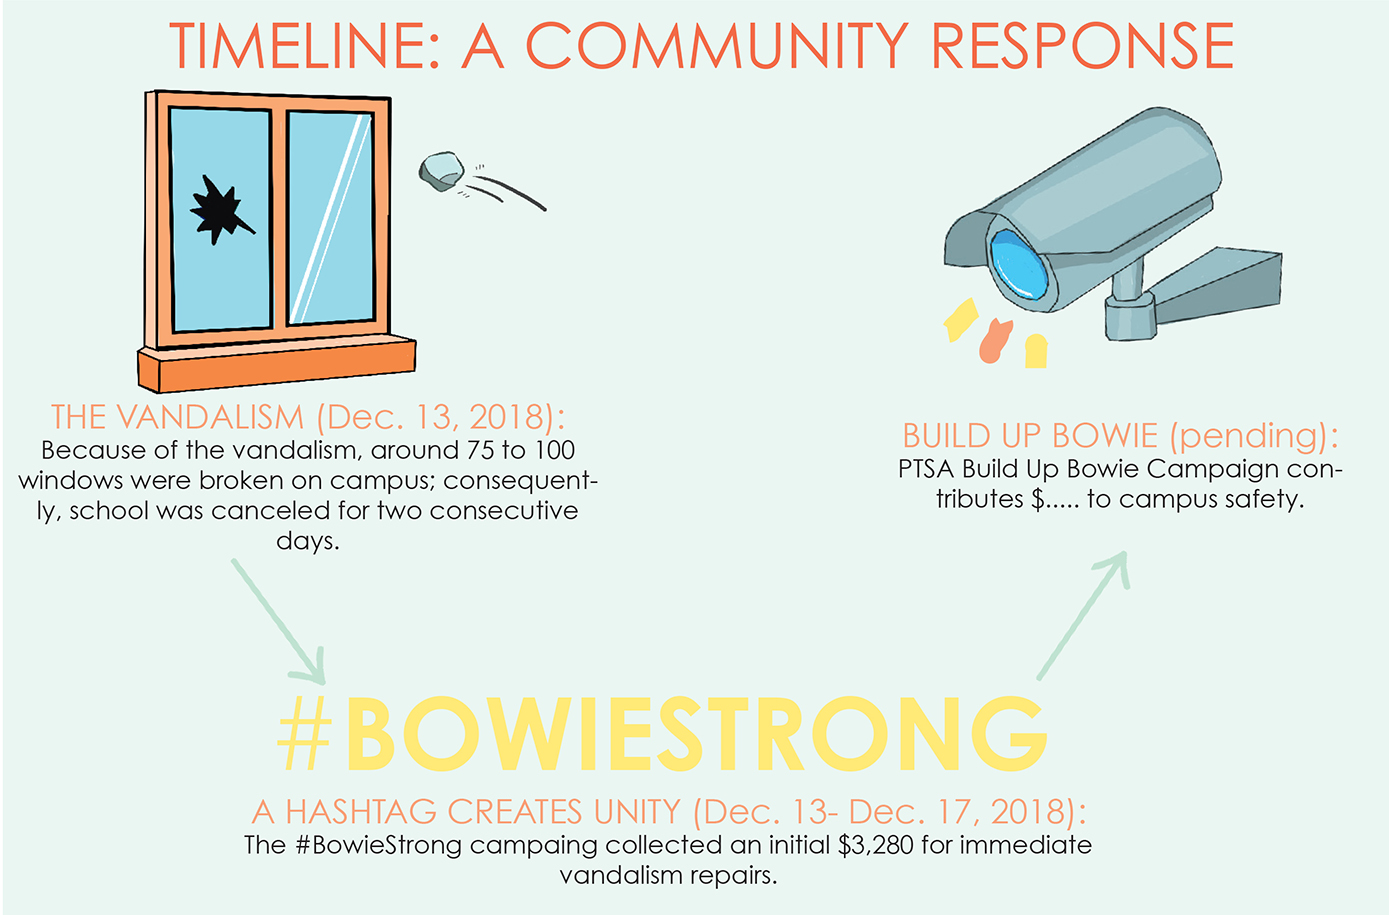 The PTSA had a 0,000 donation goal for the 2019 Build Up Bowie campaign after receiving an initial ,280 in December for vandalism repairs.